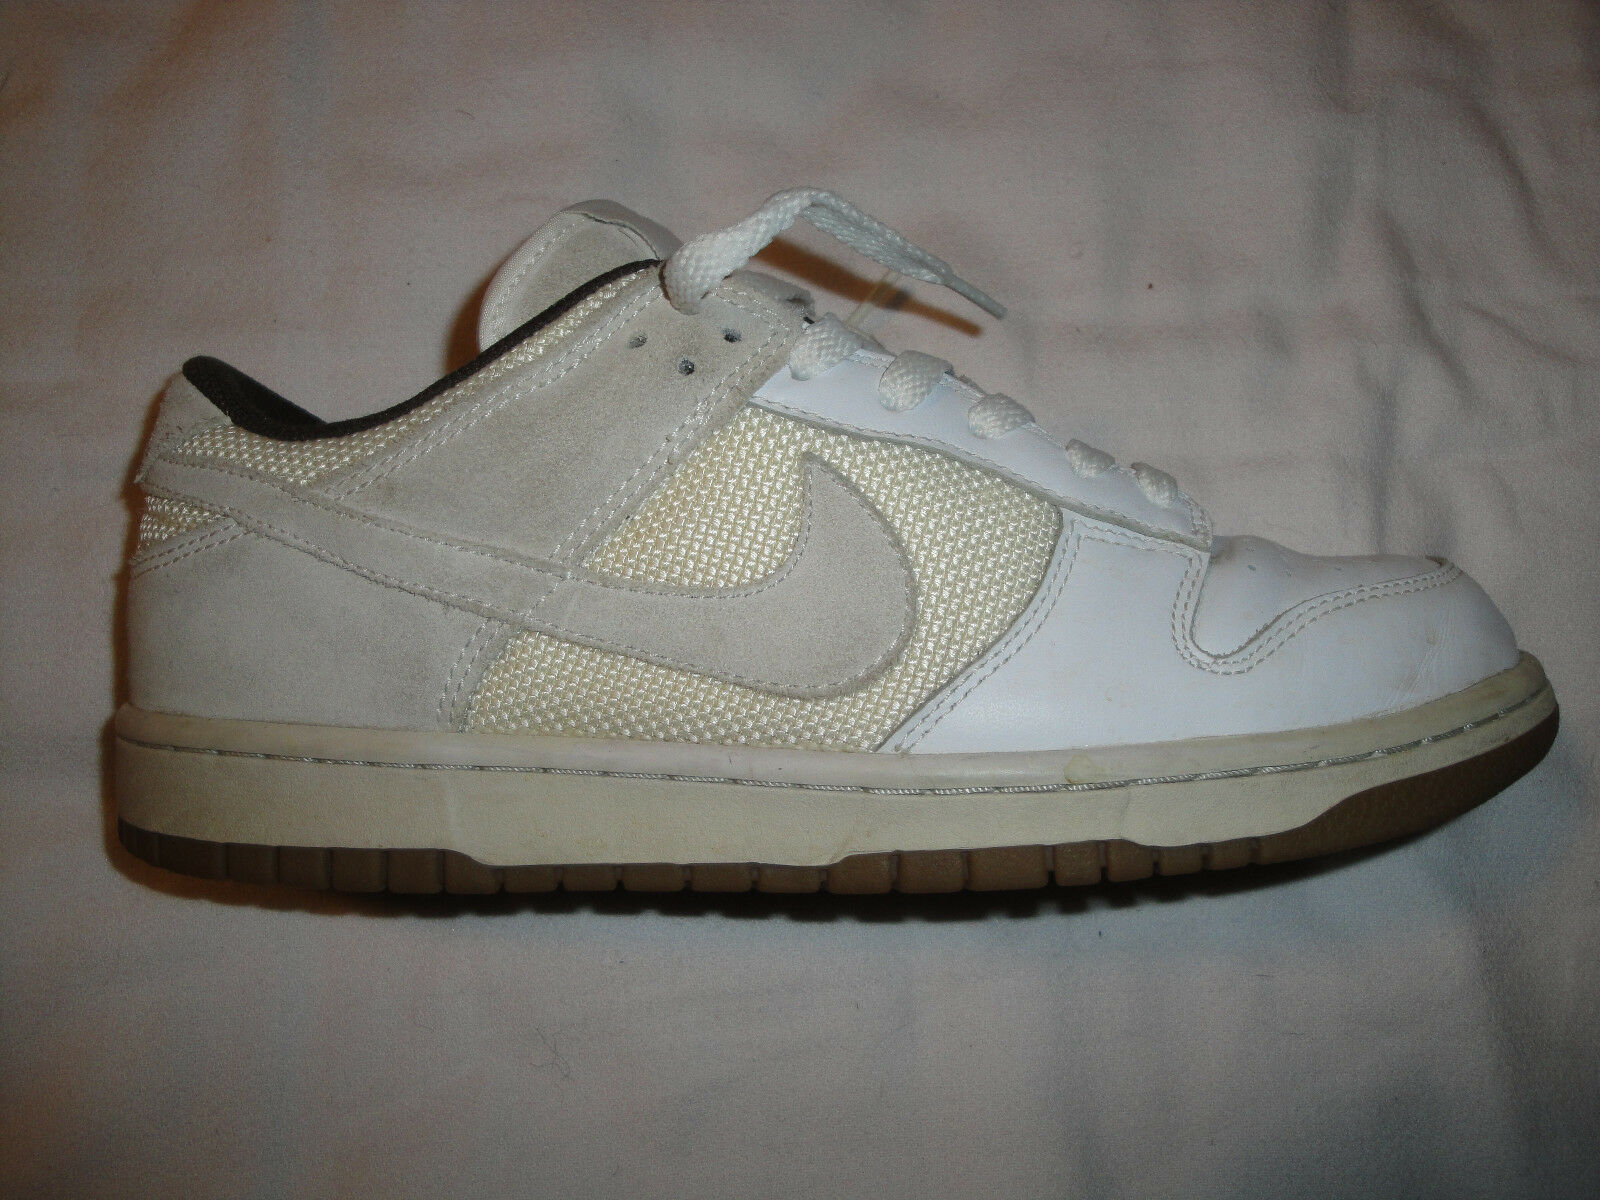 Nike Dunk Low CL Größe 9 Style  304714-225 304714-225 304714-225 Hazelnut & Chocolate e7f895